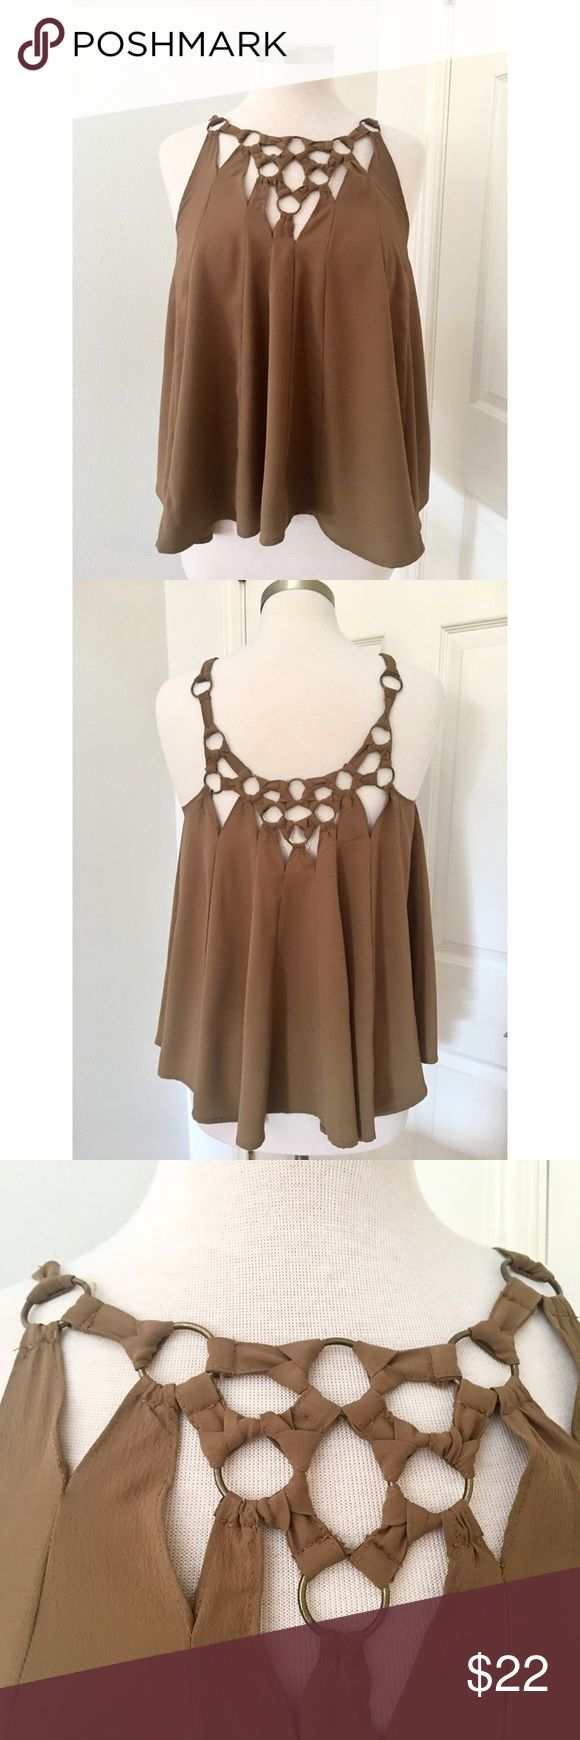 Free People Swing Tank Size XS in Brown Funky swing style tank top by Free People. Strappy knotted detail with antique gold metal loops make this top beyond unique. Pretty brown taupe shade. Size XS. 100 % polyester. Free People Tops Tank Tops